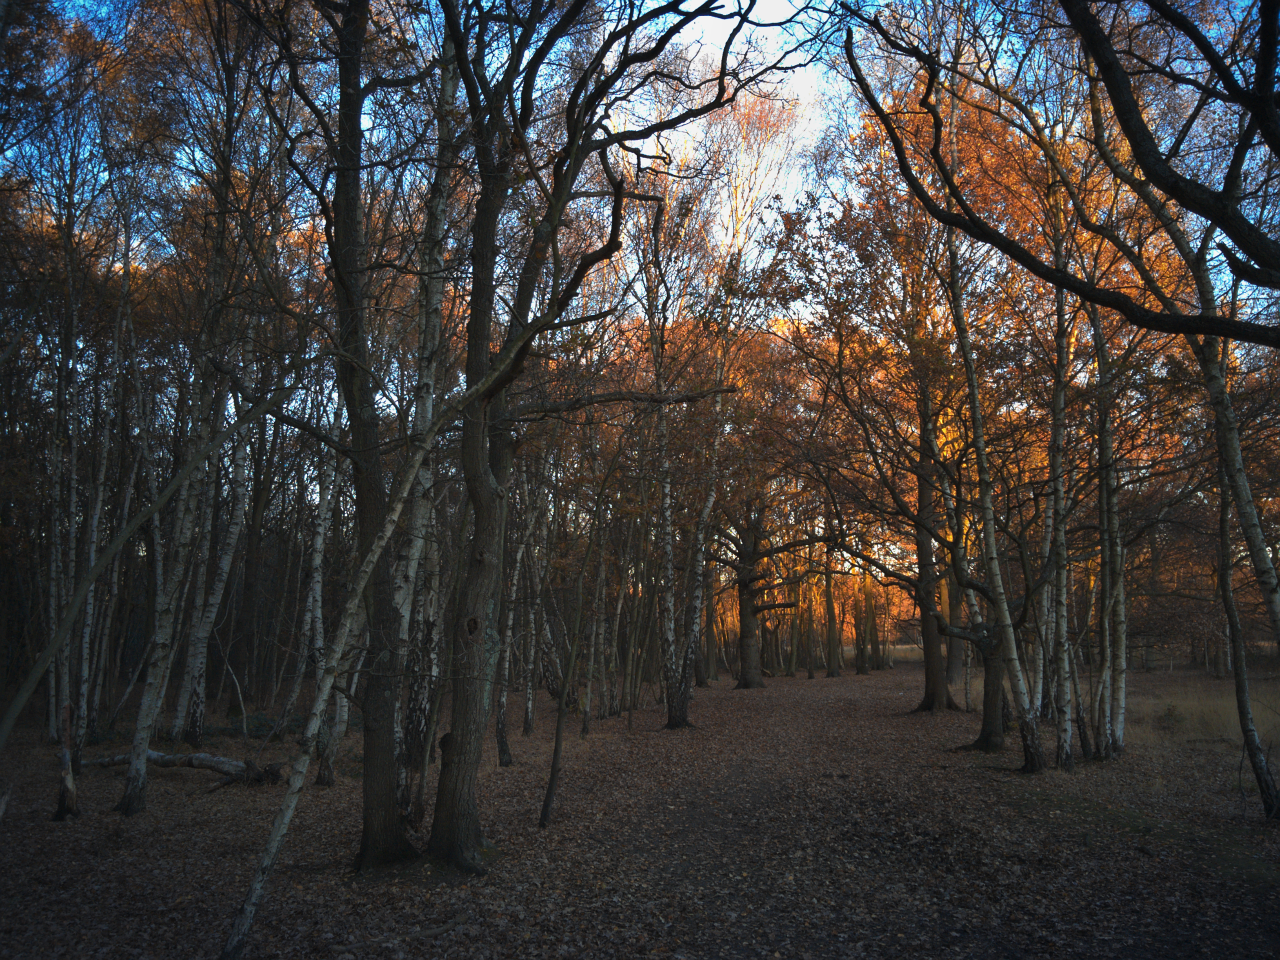 Wimbledon Common (29 November 2016)